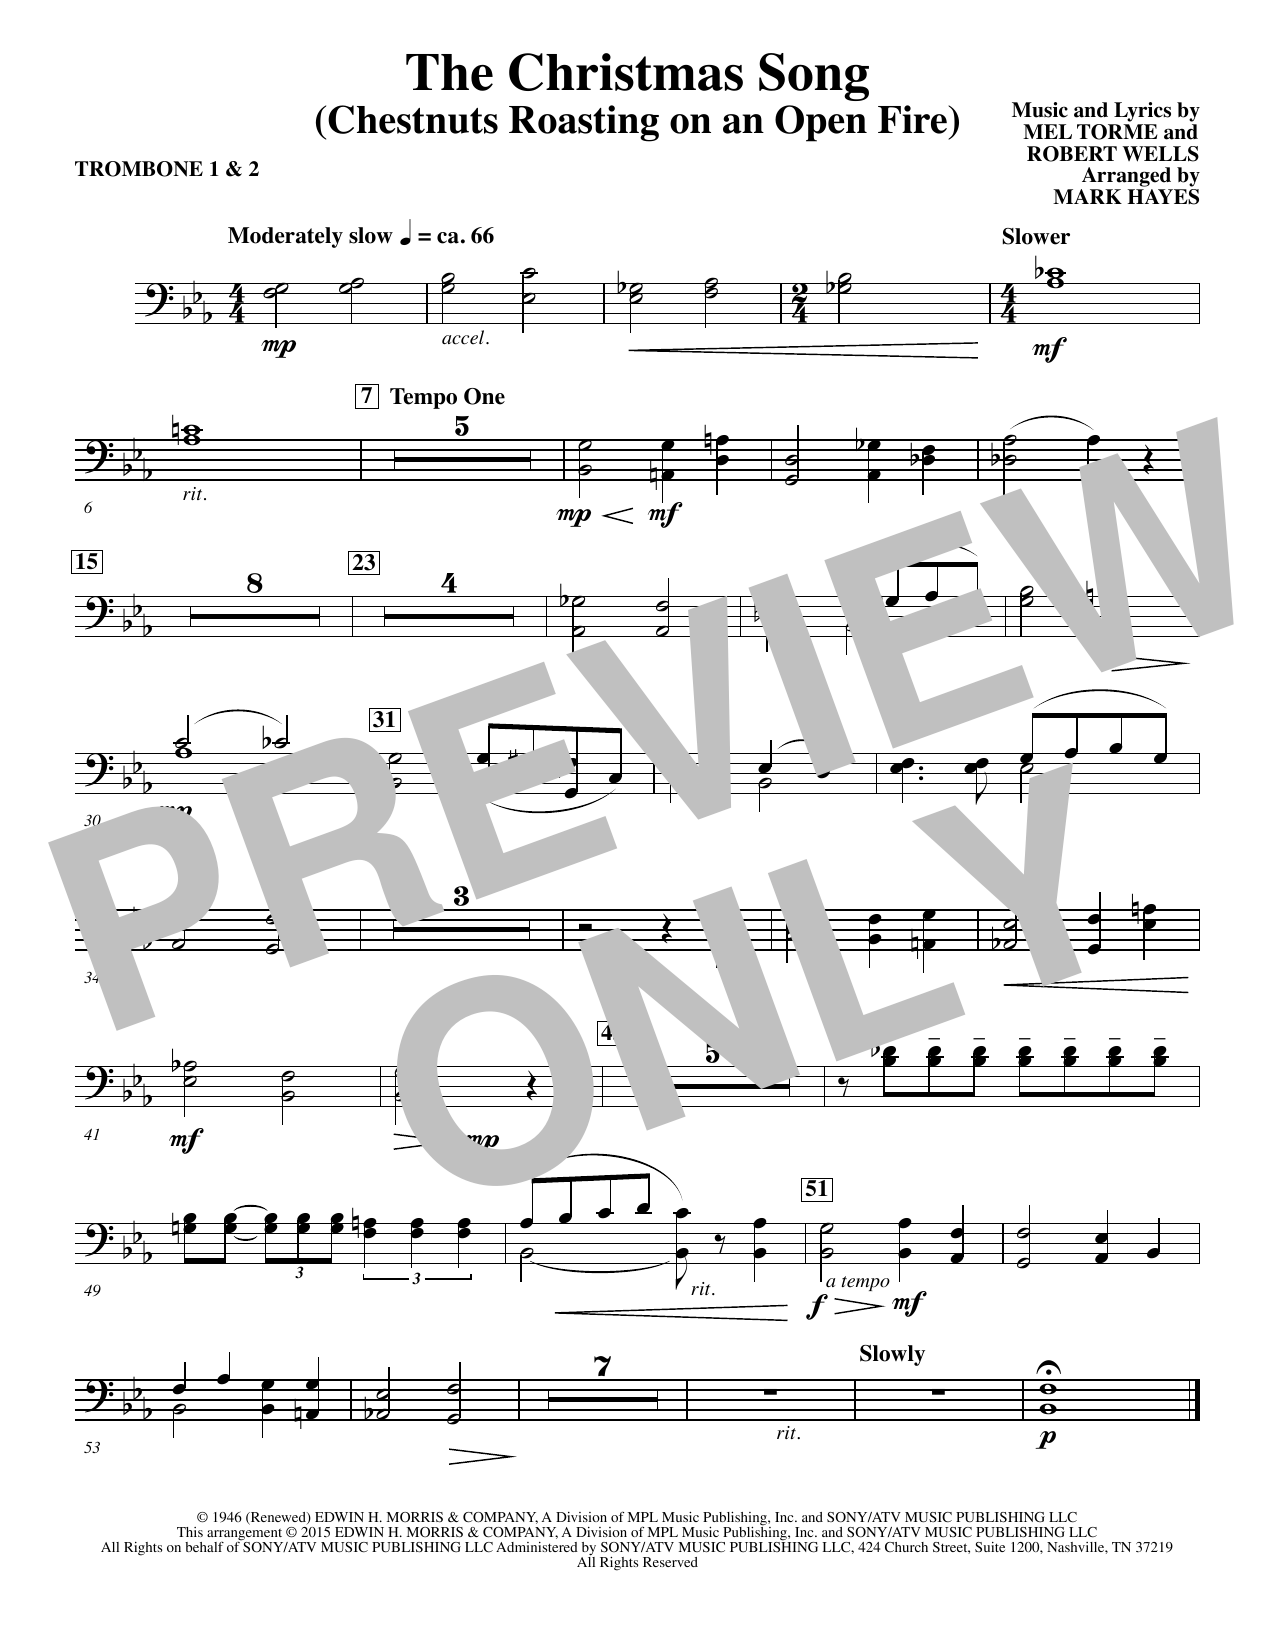 The Christmas Song (Chestnuts Roasting On An Open Fire) - Trombone 1,2 Sheet Music